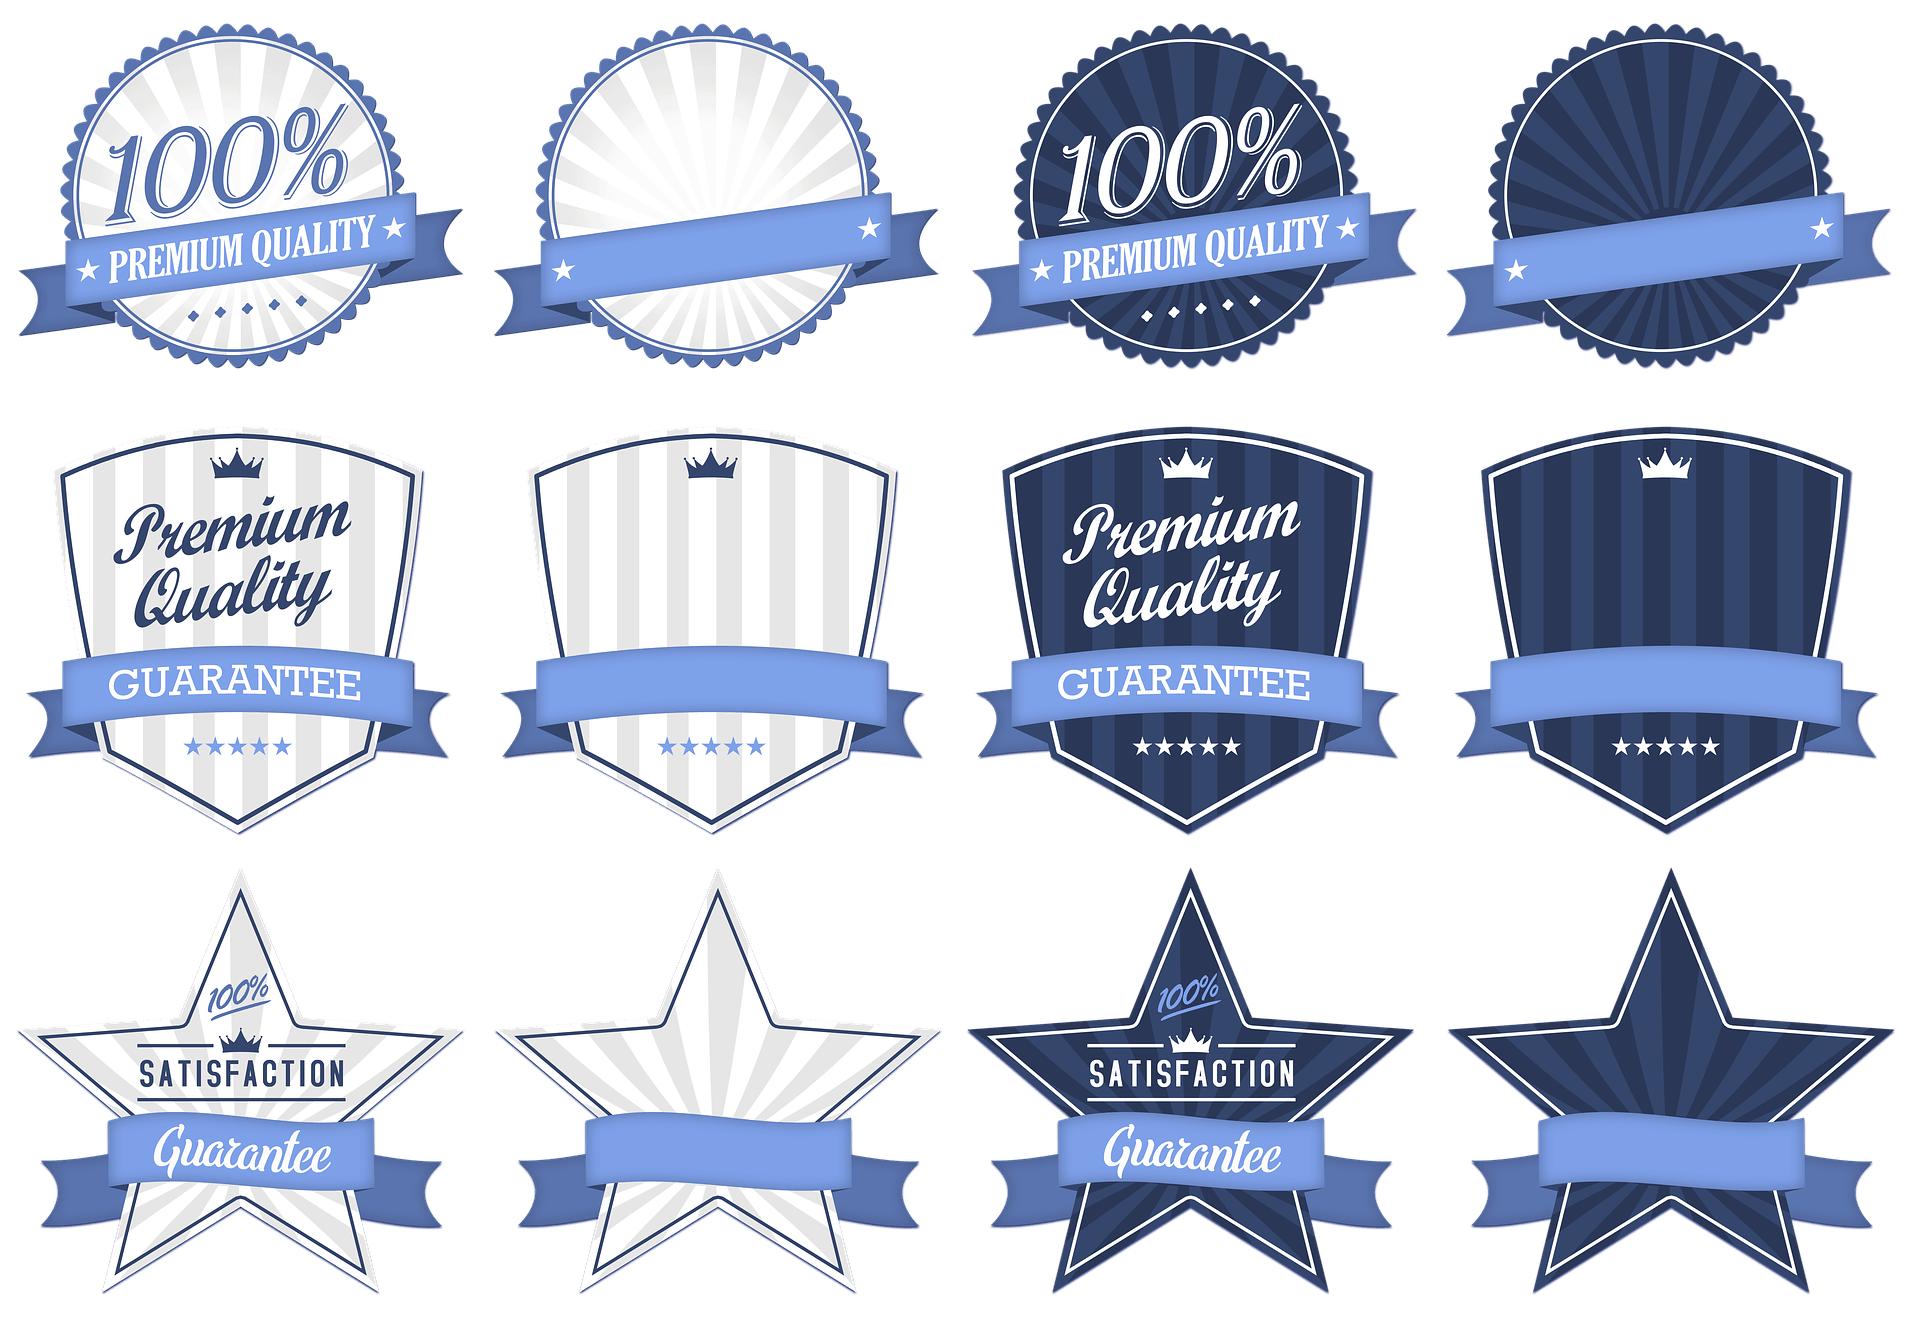 How Exactly Logos Can Help In Increasing Your Brand Visibility